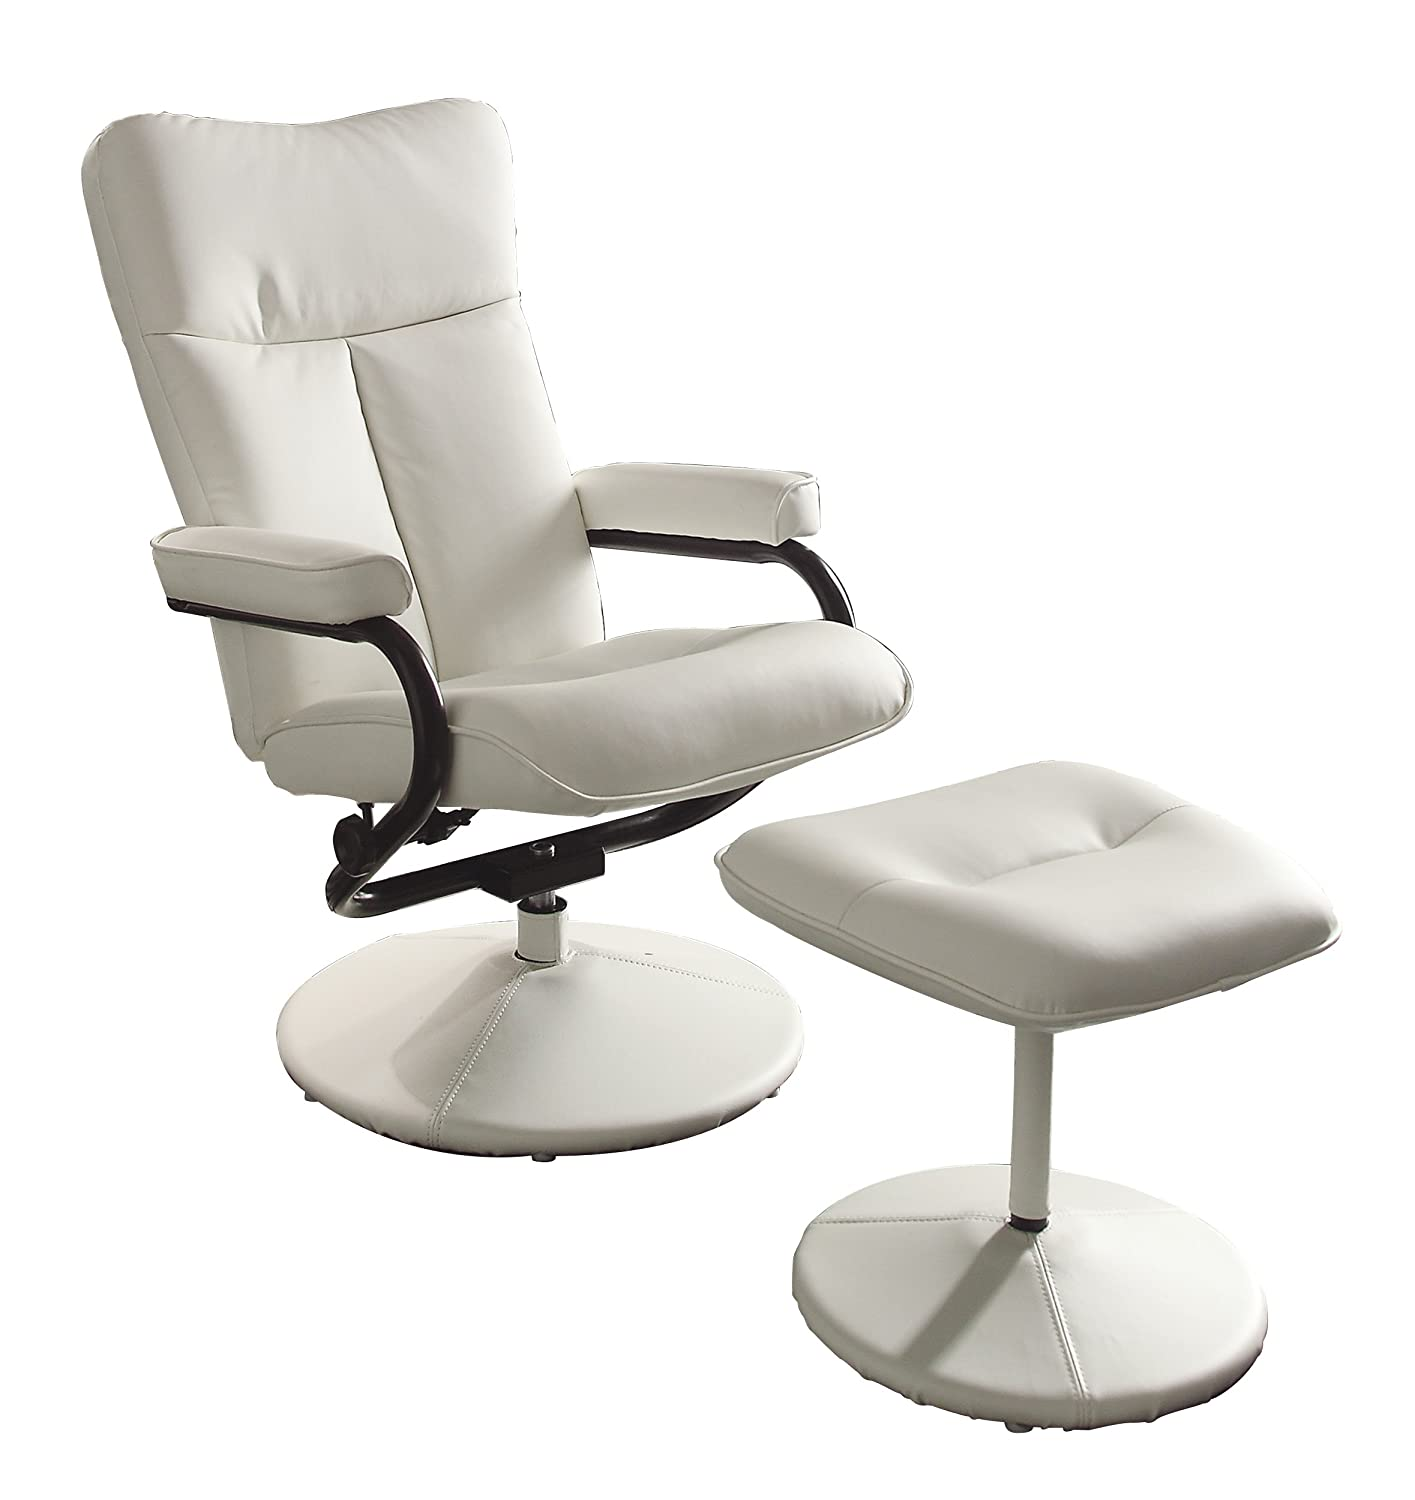 Amazon Homelegance 8555WHT 1 Swivel Reclining Chair with